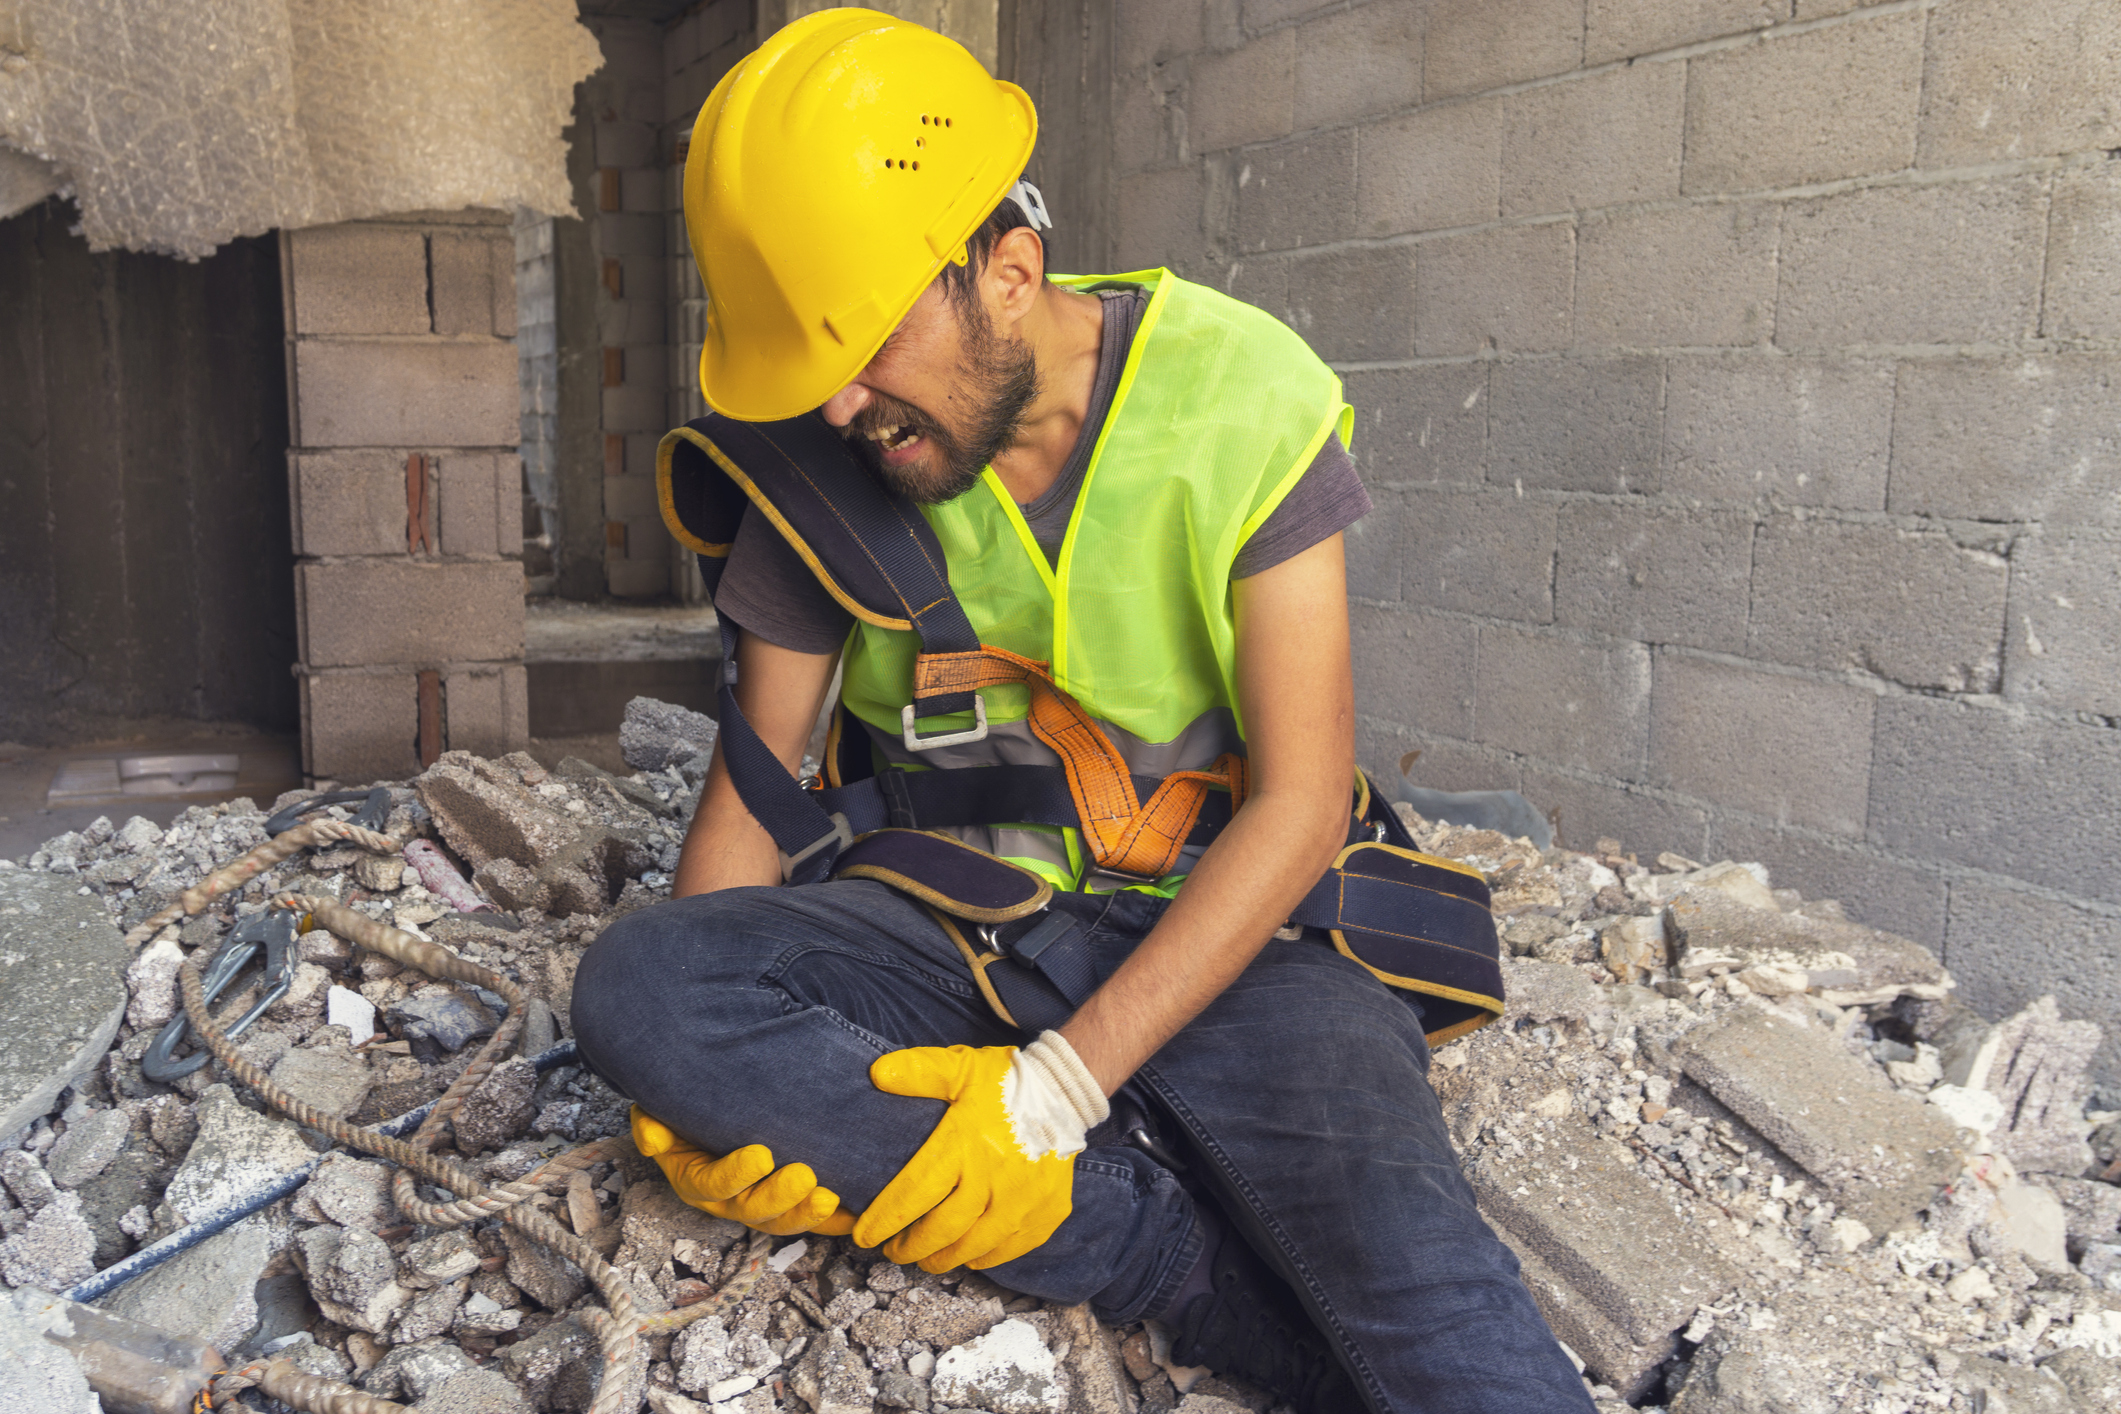 A construction worker suffering an on-the-job injury.